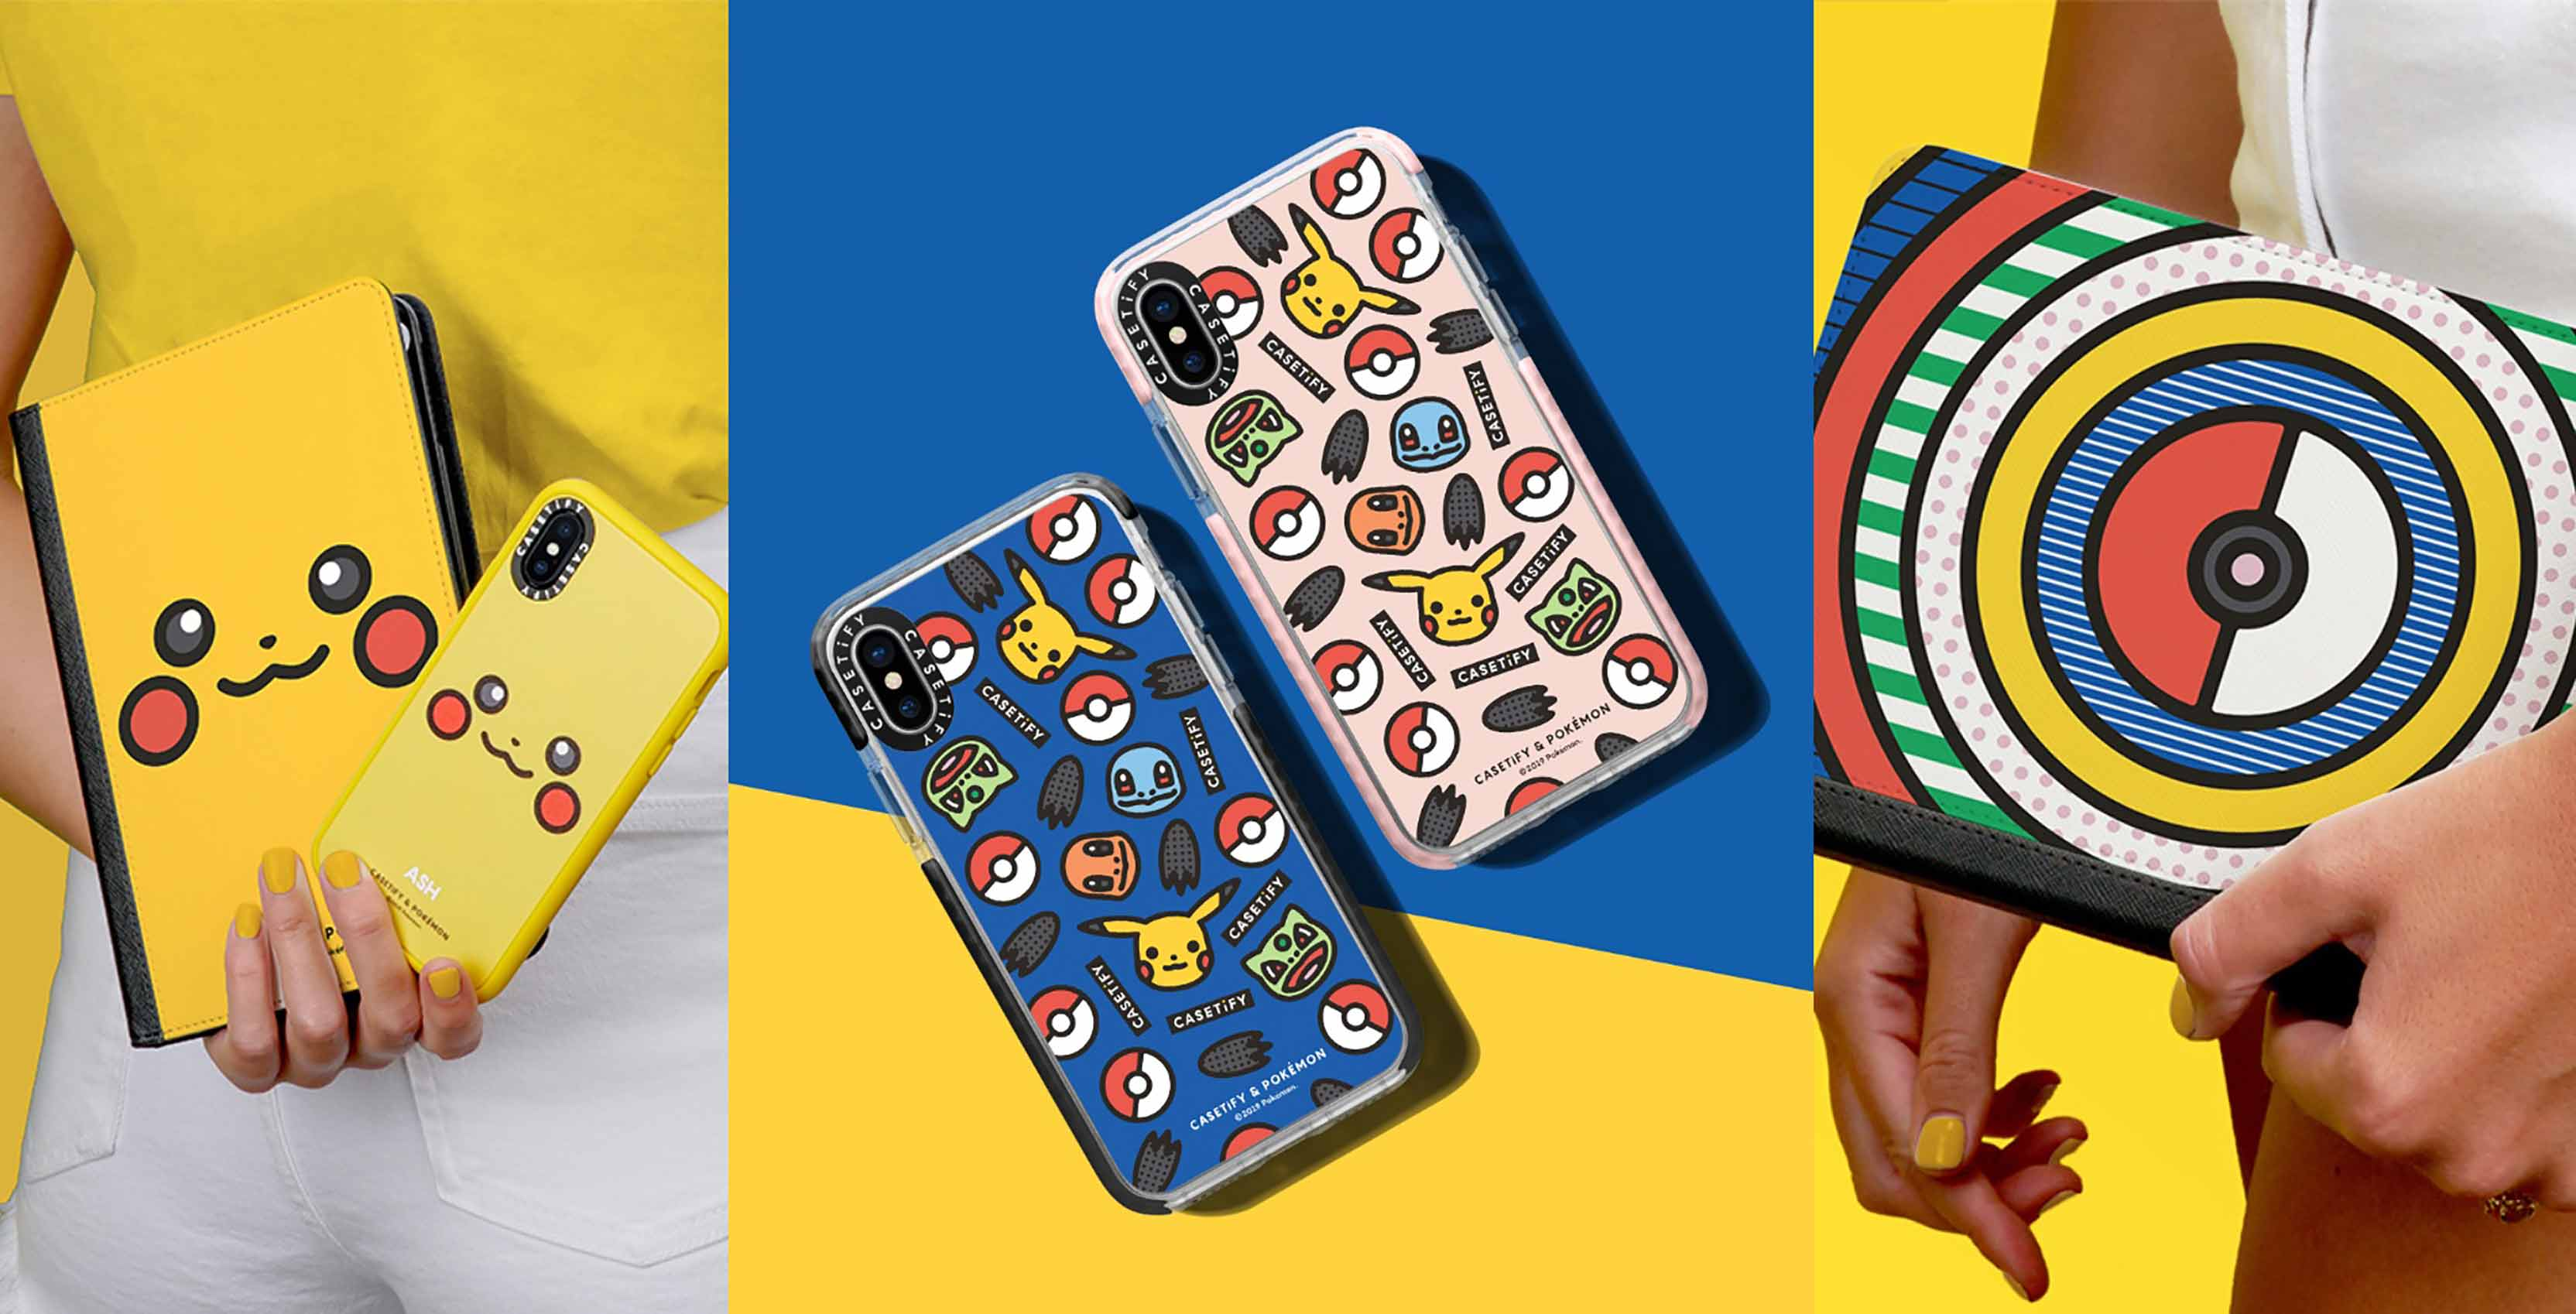 Casetify launches new Pokémon-themed iPhone, iPad and Mac accessories